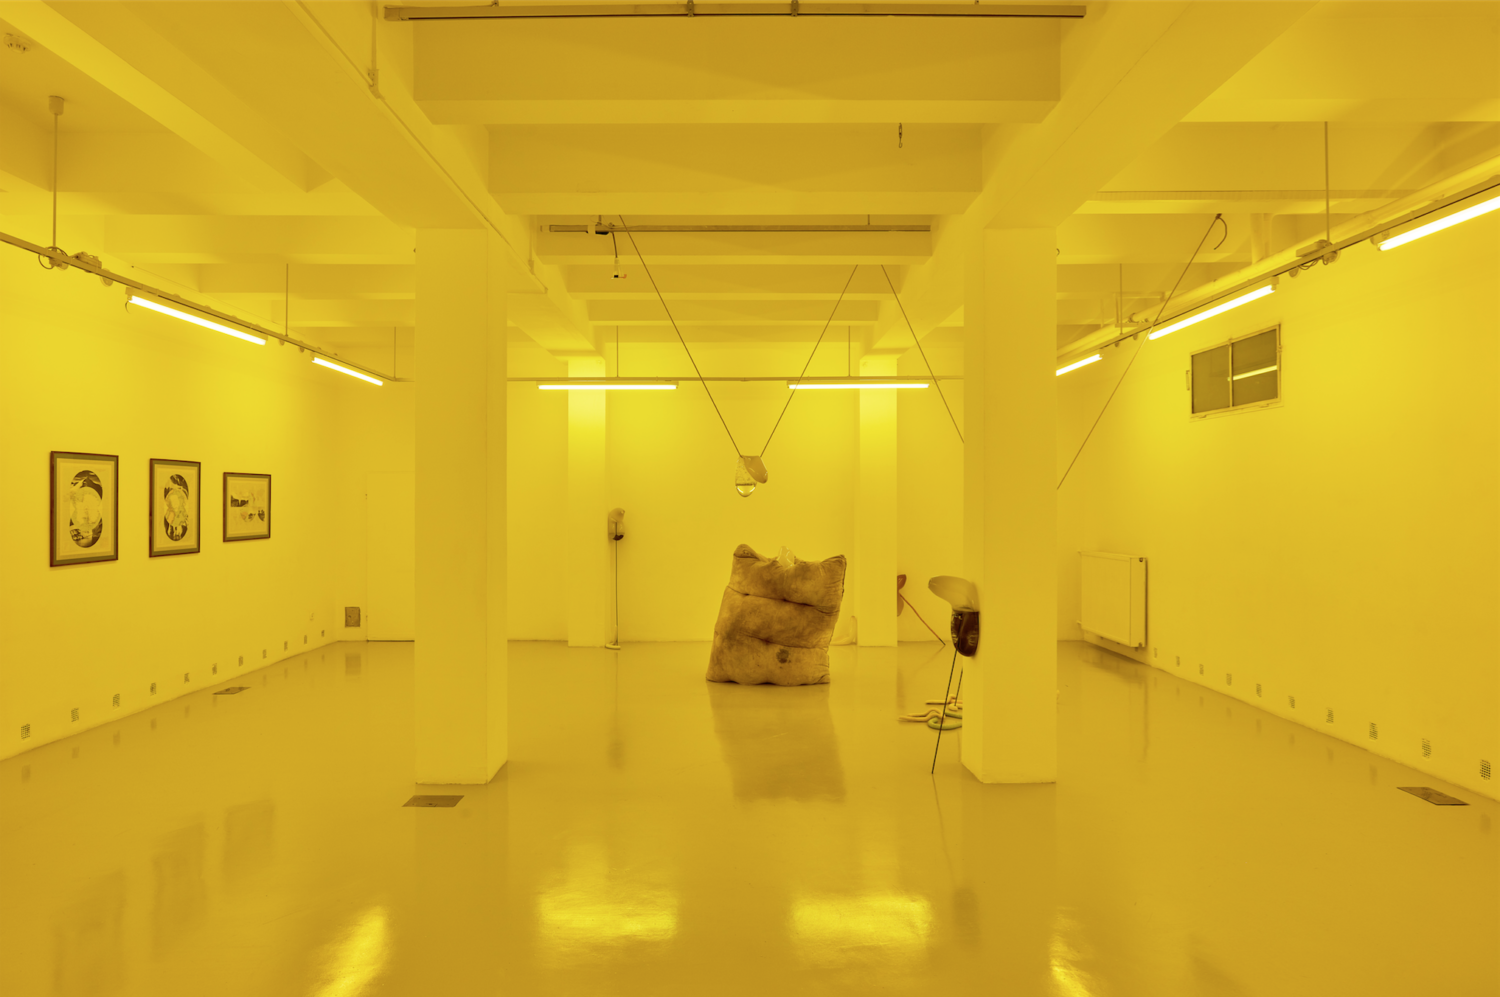 Image credit: Installation view, Some people believe the Sun used to be yellow, curated by Borbála Soós, Dec 2018/Jan 2019, Trafó House of Contemporary Arts, Budapest, Hungary